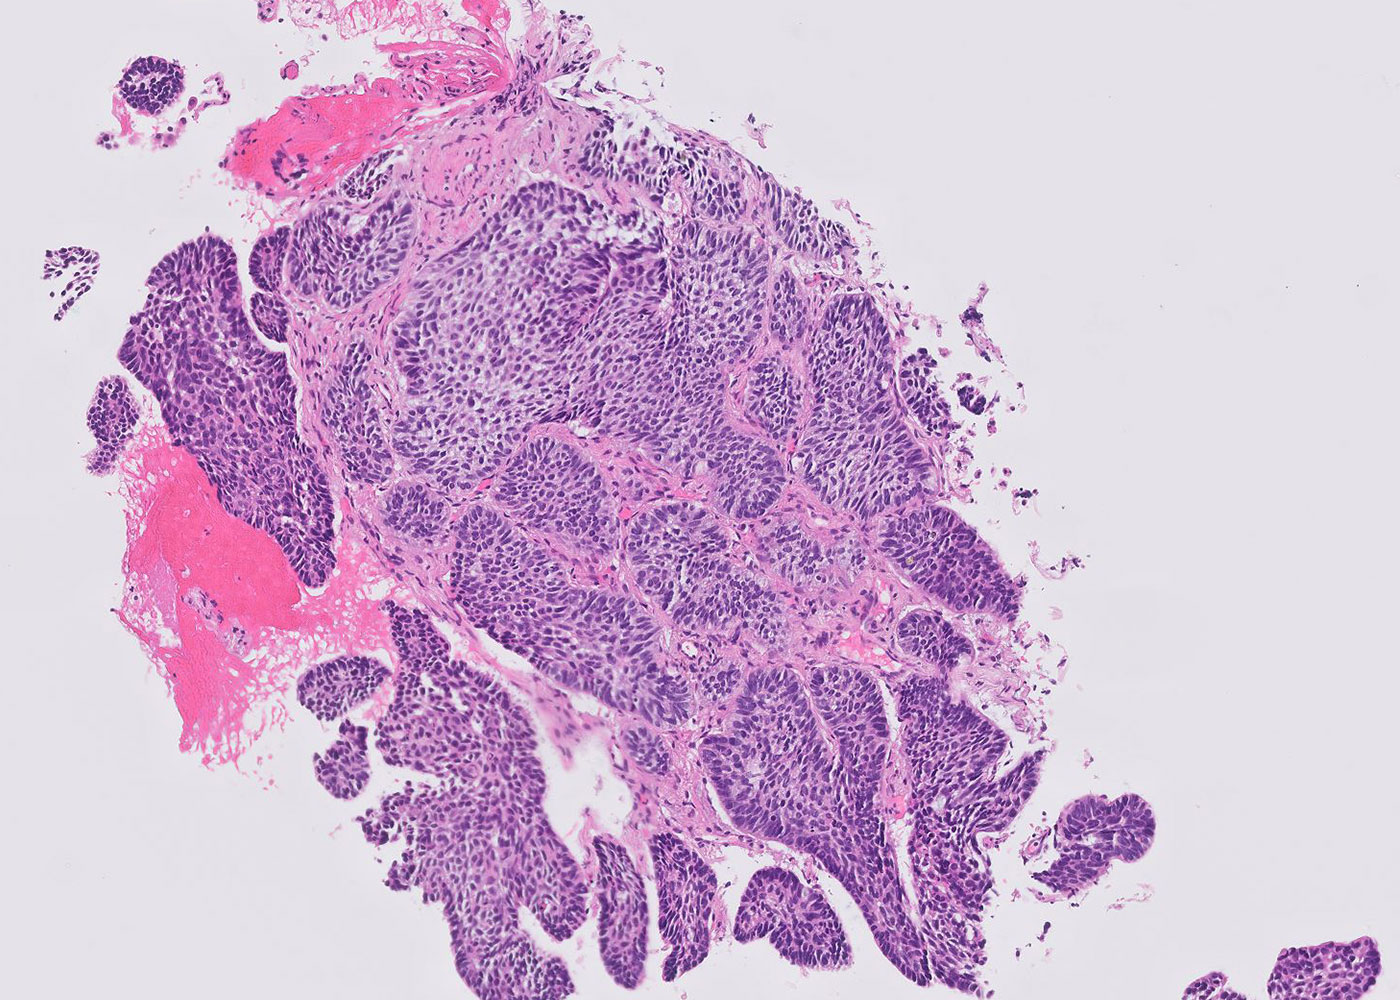 Fig 6. Pathology slide confirming diagnosis in the room